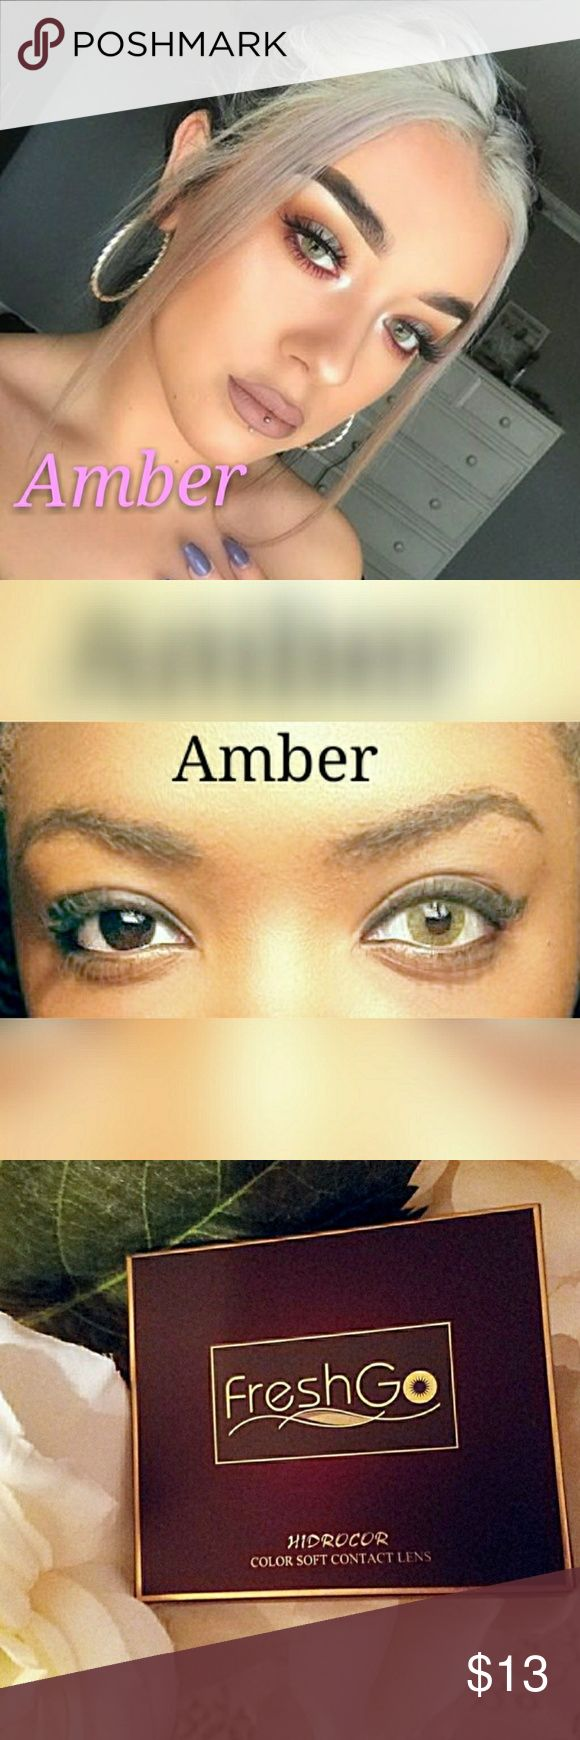 🎀Amber🎀 COLOR CONTACT LENSES ✔ Fast Shipping!  ✔ brand new in box ✔ lasts twelv month Other